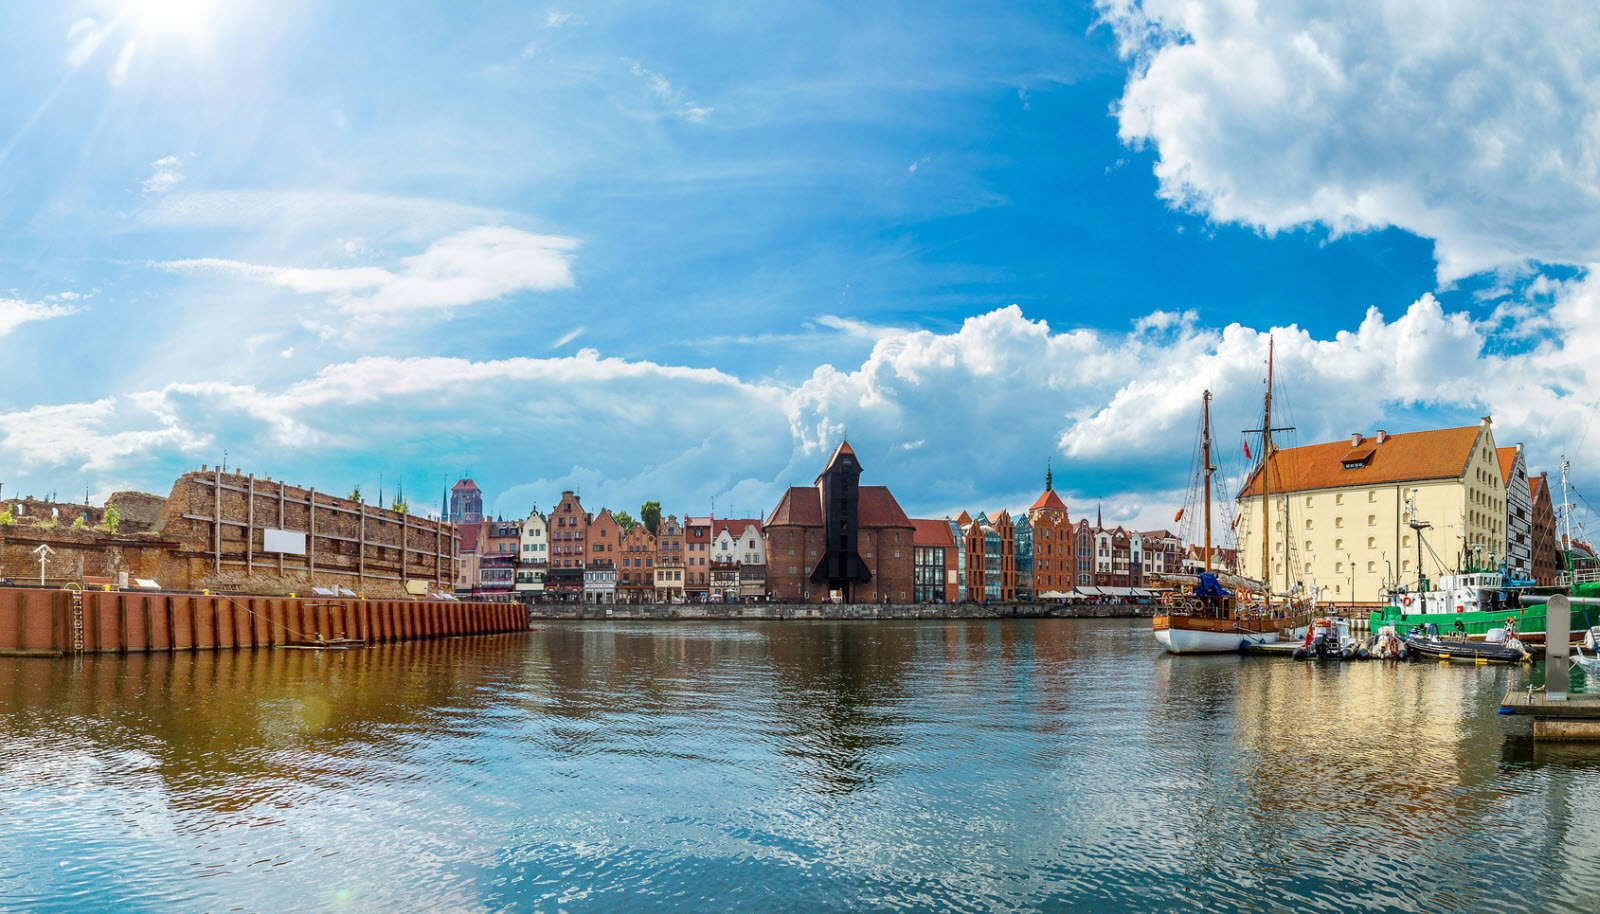 Tourist ship and historic houses next to Motlawa river in port of Gdansk, Baltic Sea, Poland.